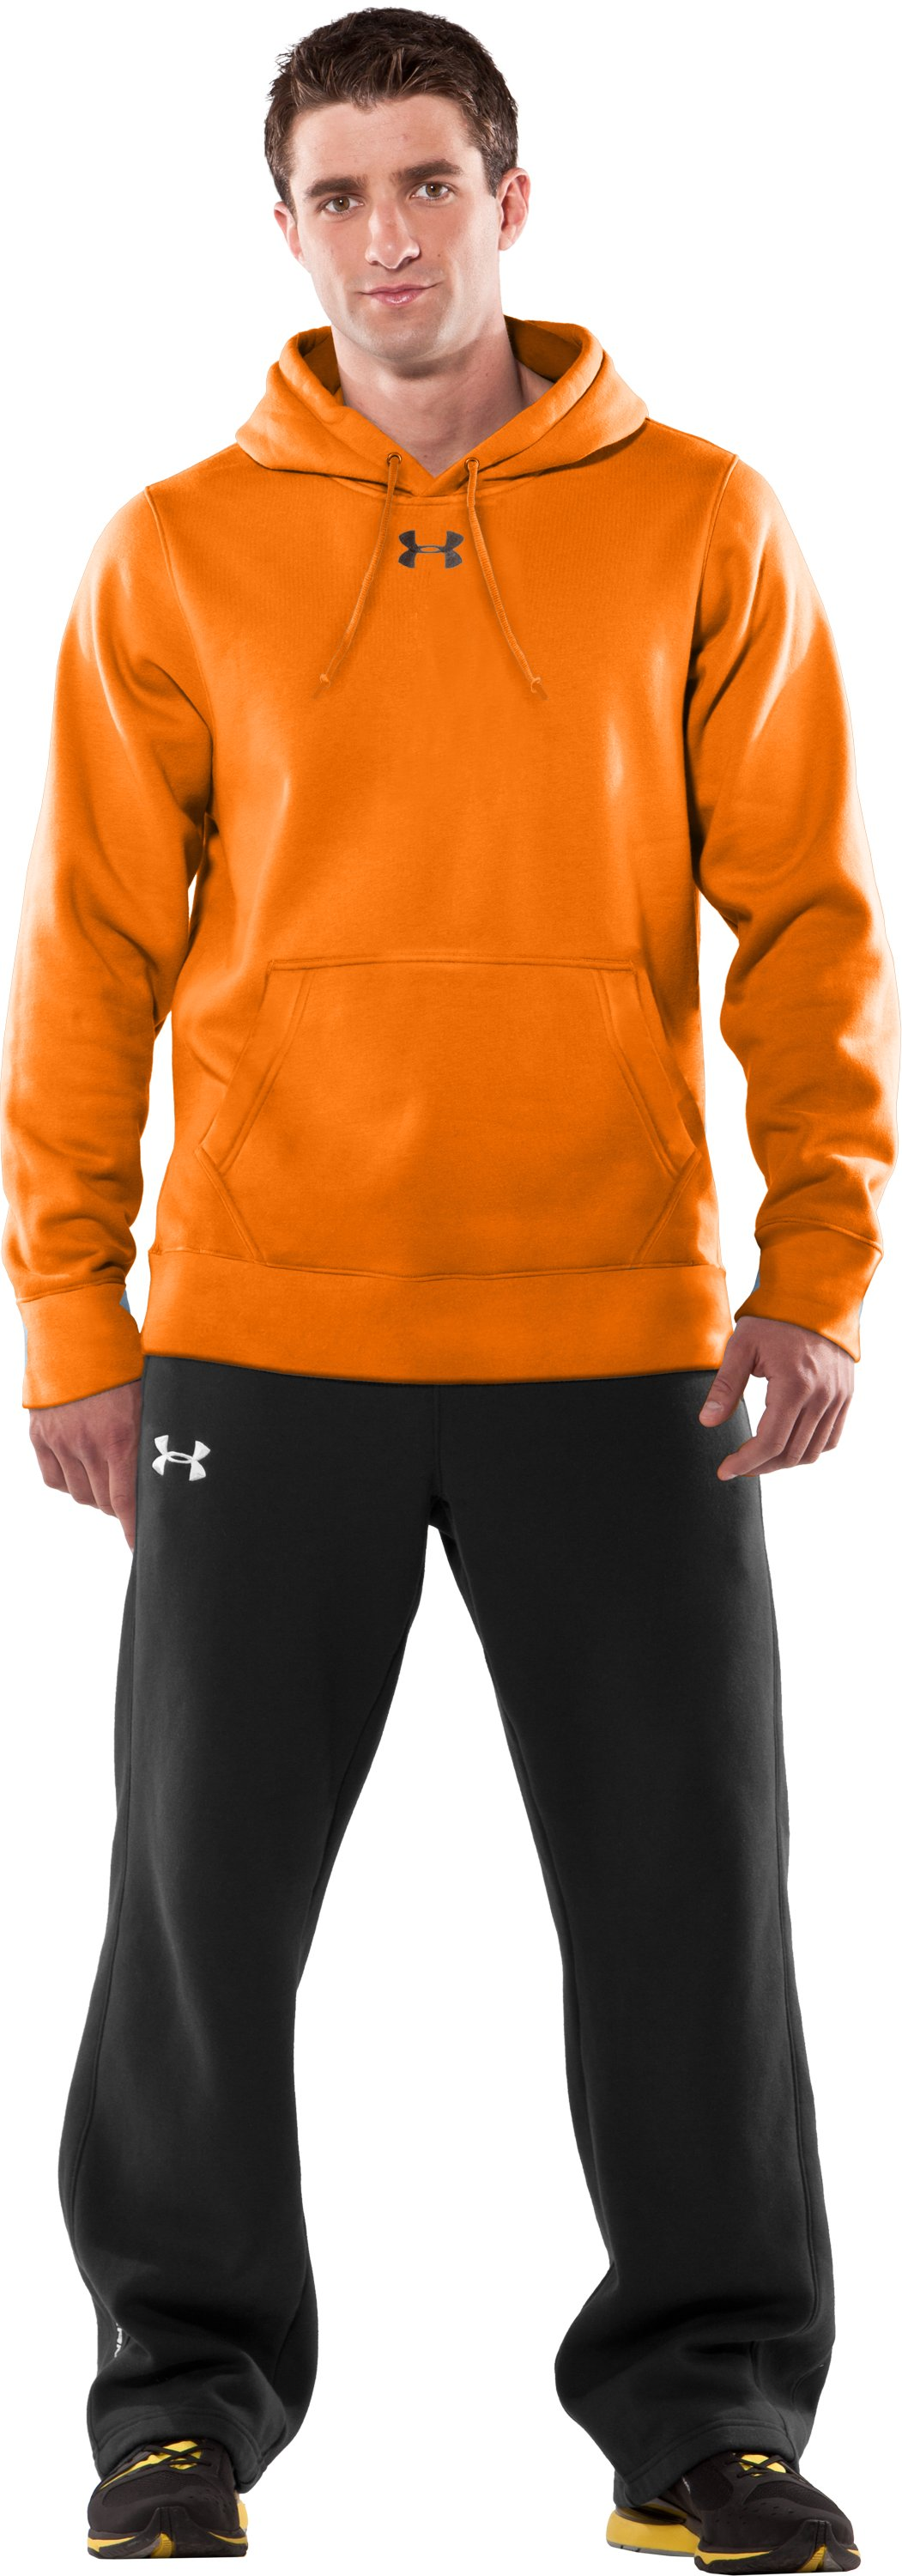 Men's Armour® Fleece Blaze Hoodie, Blaze Orange, Front